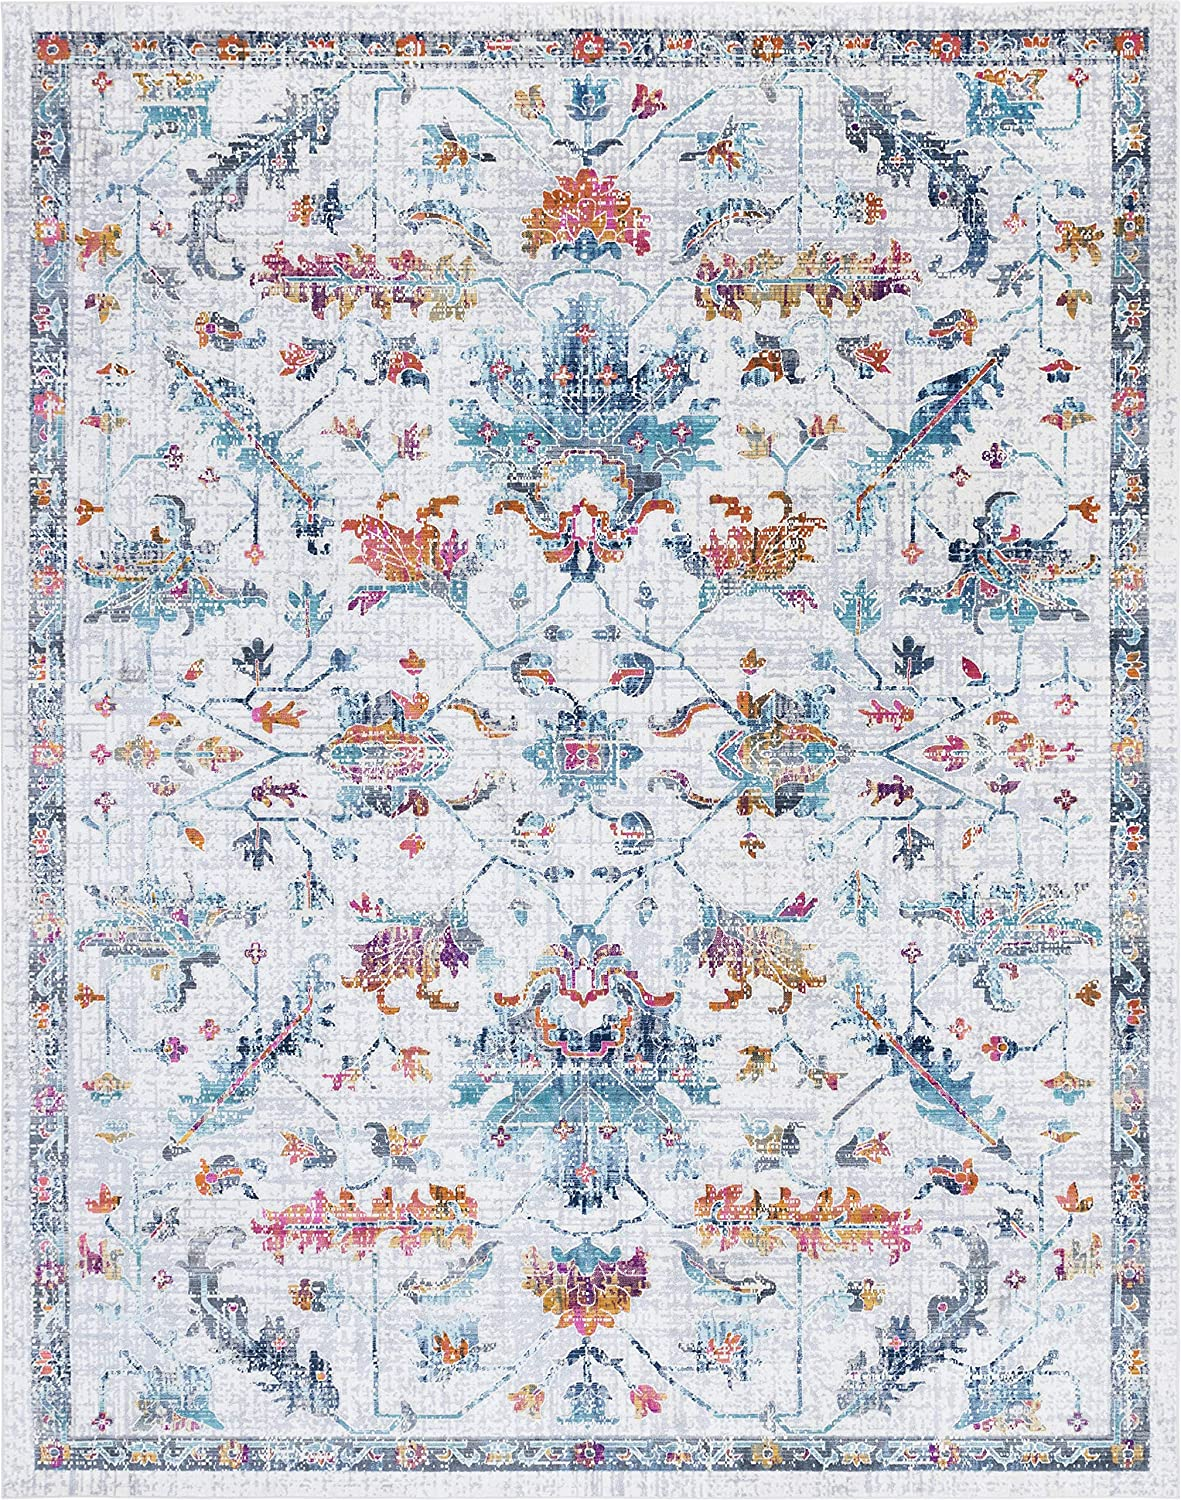 Rugs.com Budapest Collection Area Rug – 9X12 Ivory Low-Pile Rug Perfect for Living Rooms, Large Dining Rooms, Open Floorplans